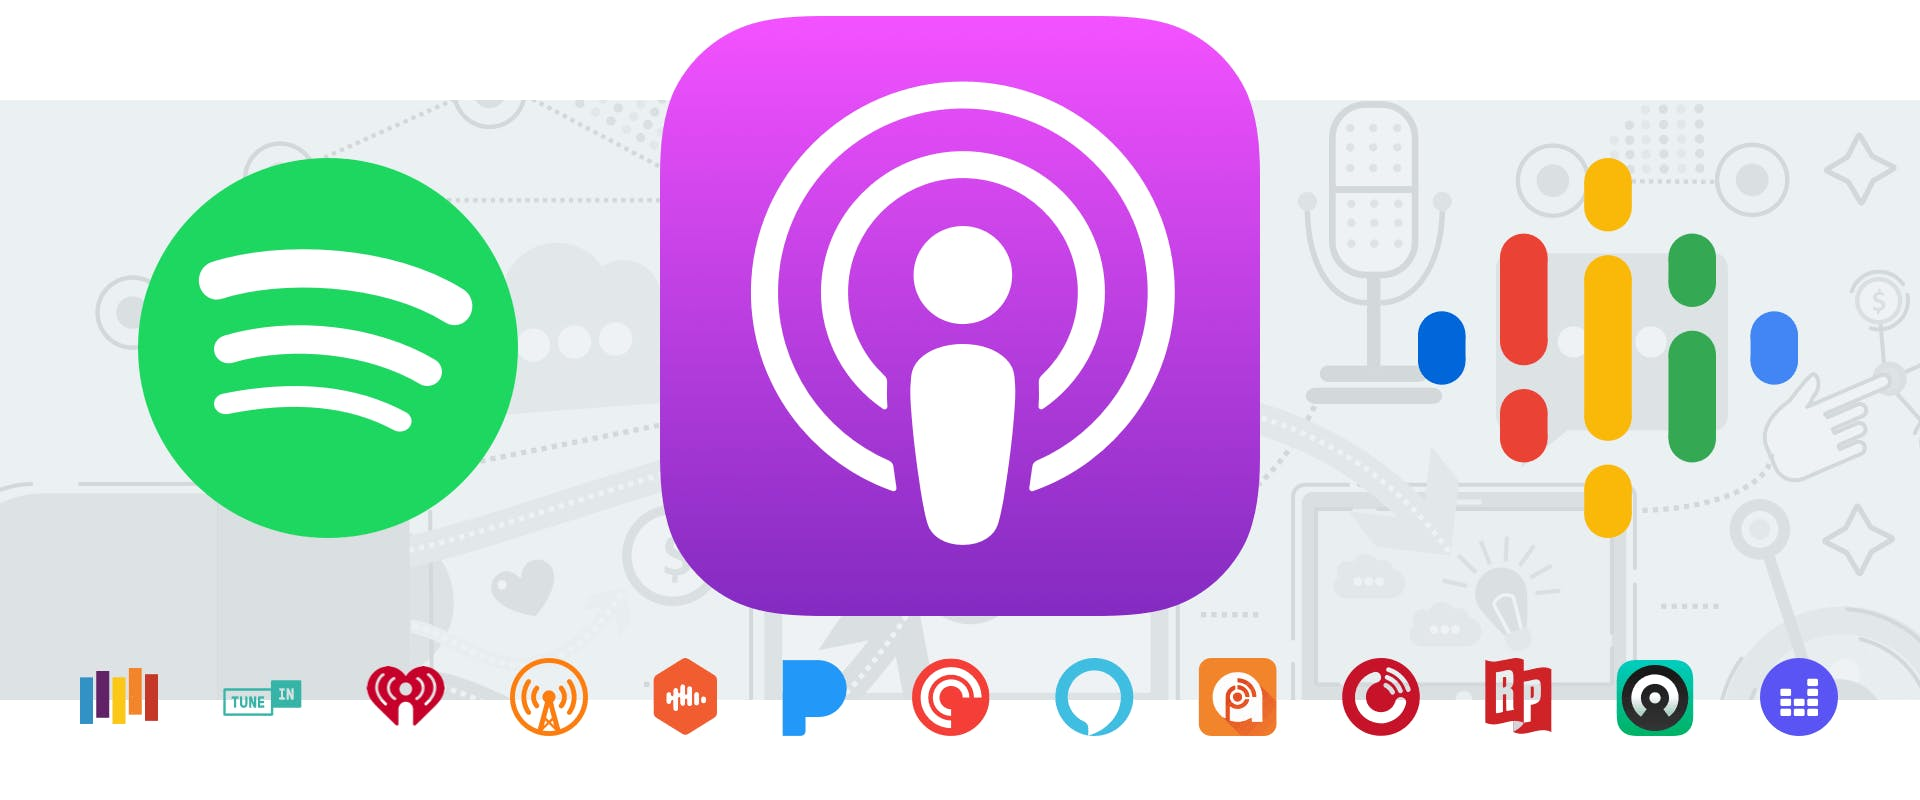 Podcast directory icons from Spotify, Apple, and Google Podcasts